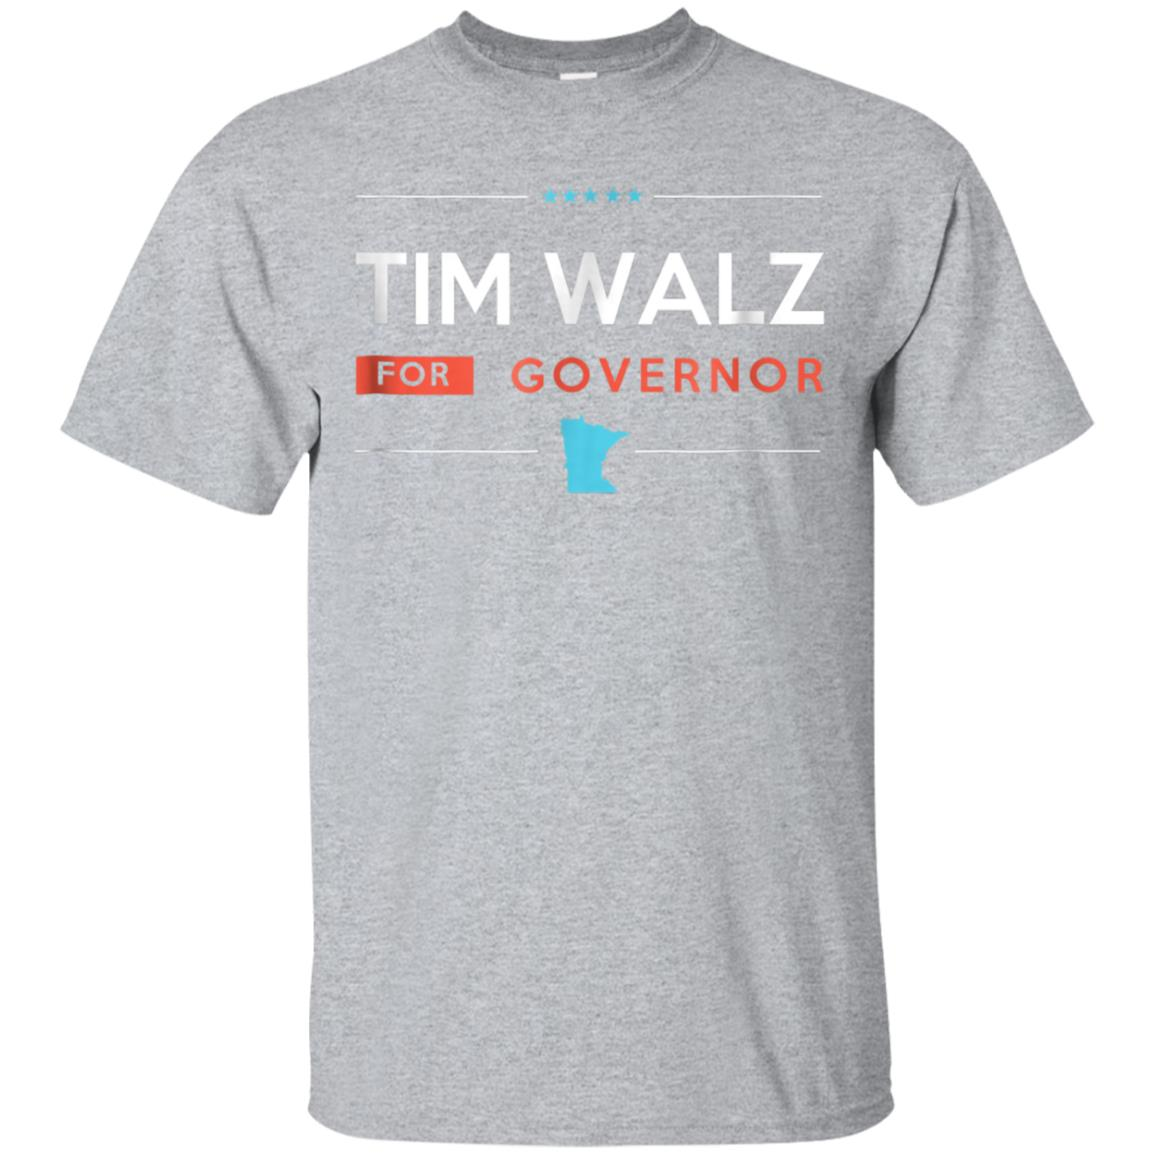 Tim Walz for Minnesota Governor Campaign 2018 Shirt 99promocode